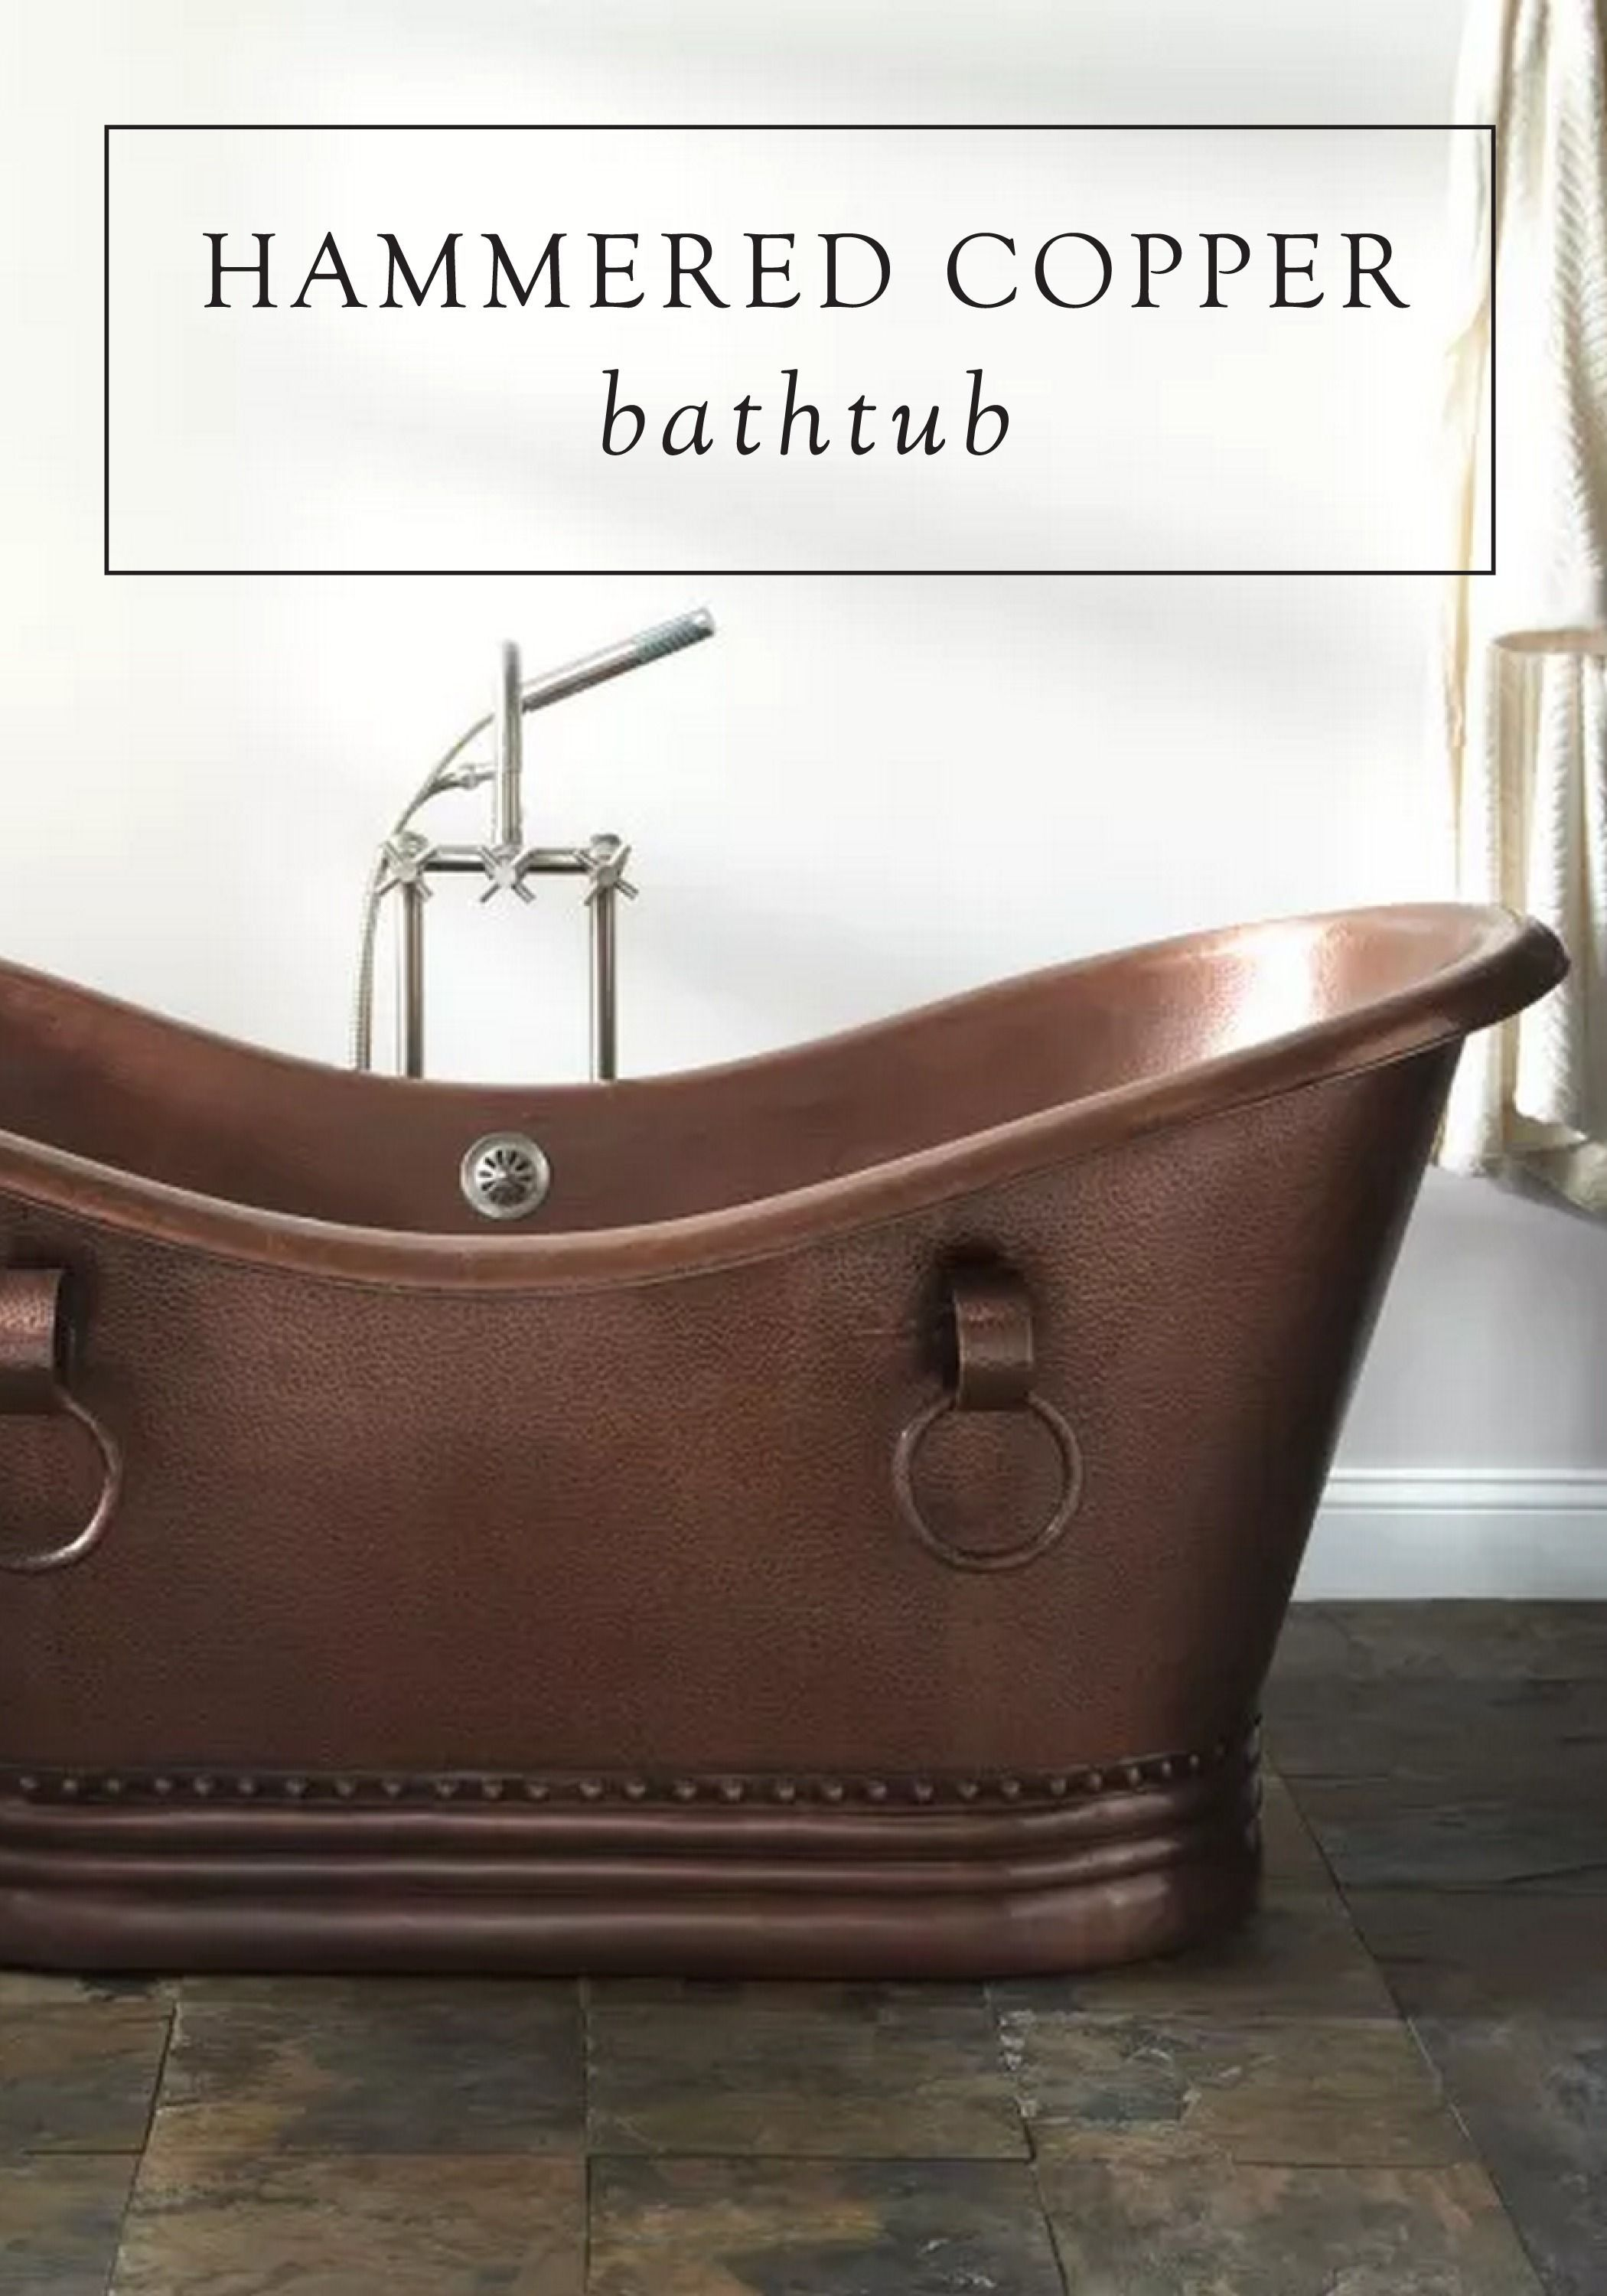 Inspiration for your bathroom remodel starts with this hammered copper bathtub as the perfect focal piece